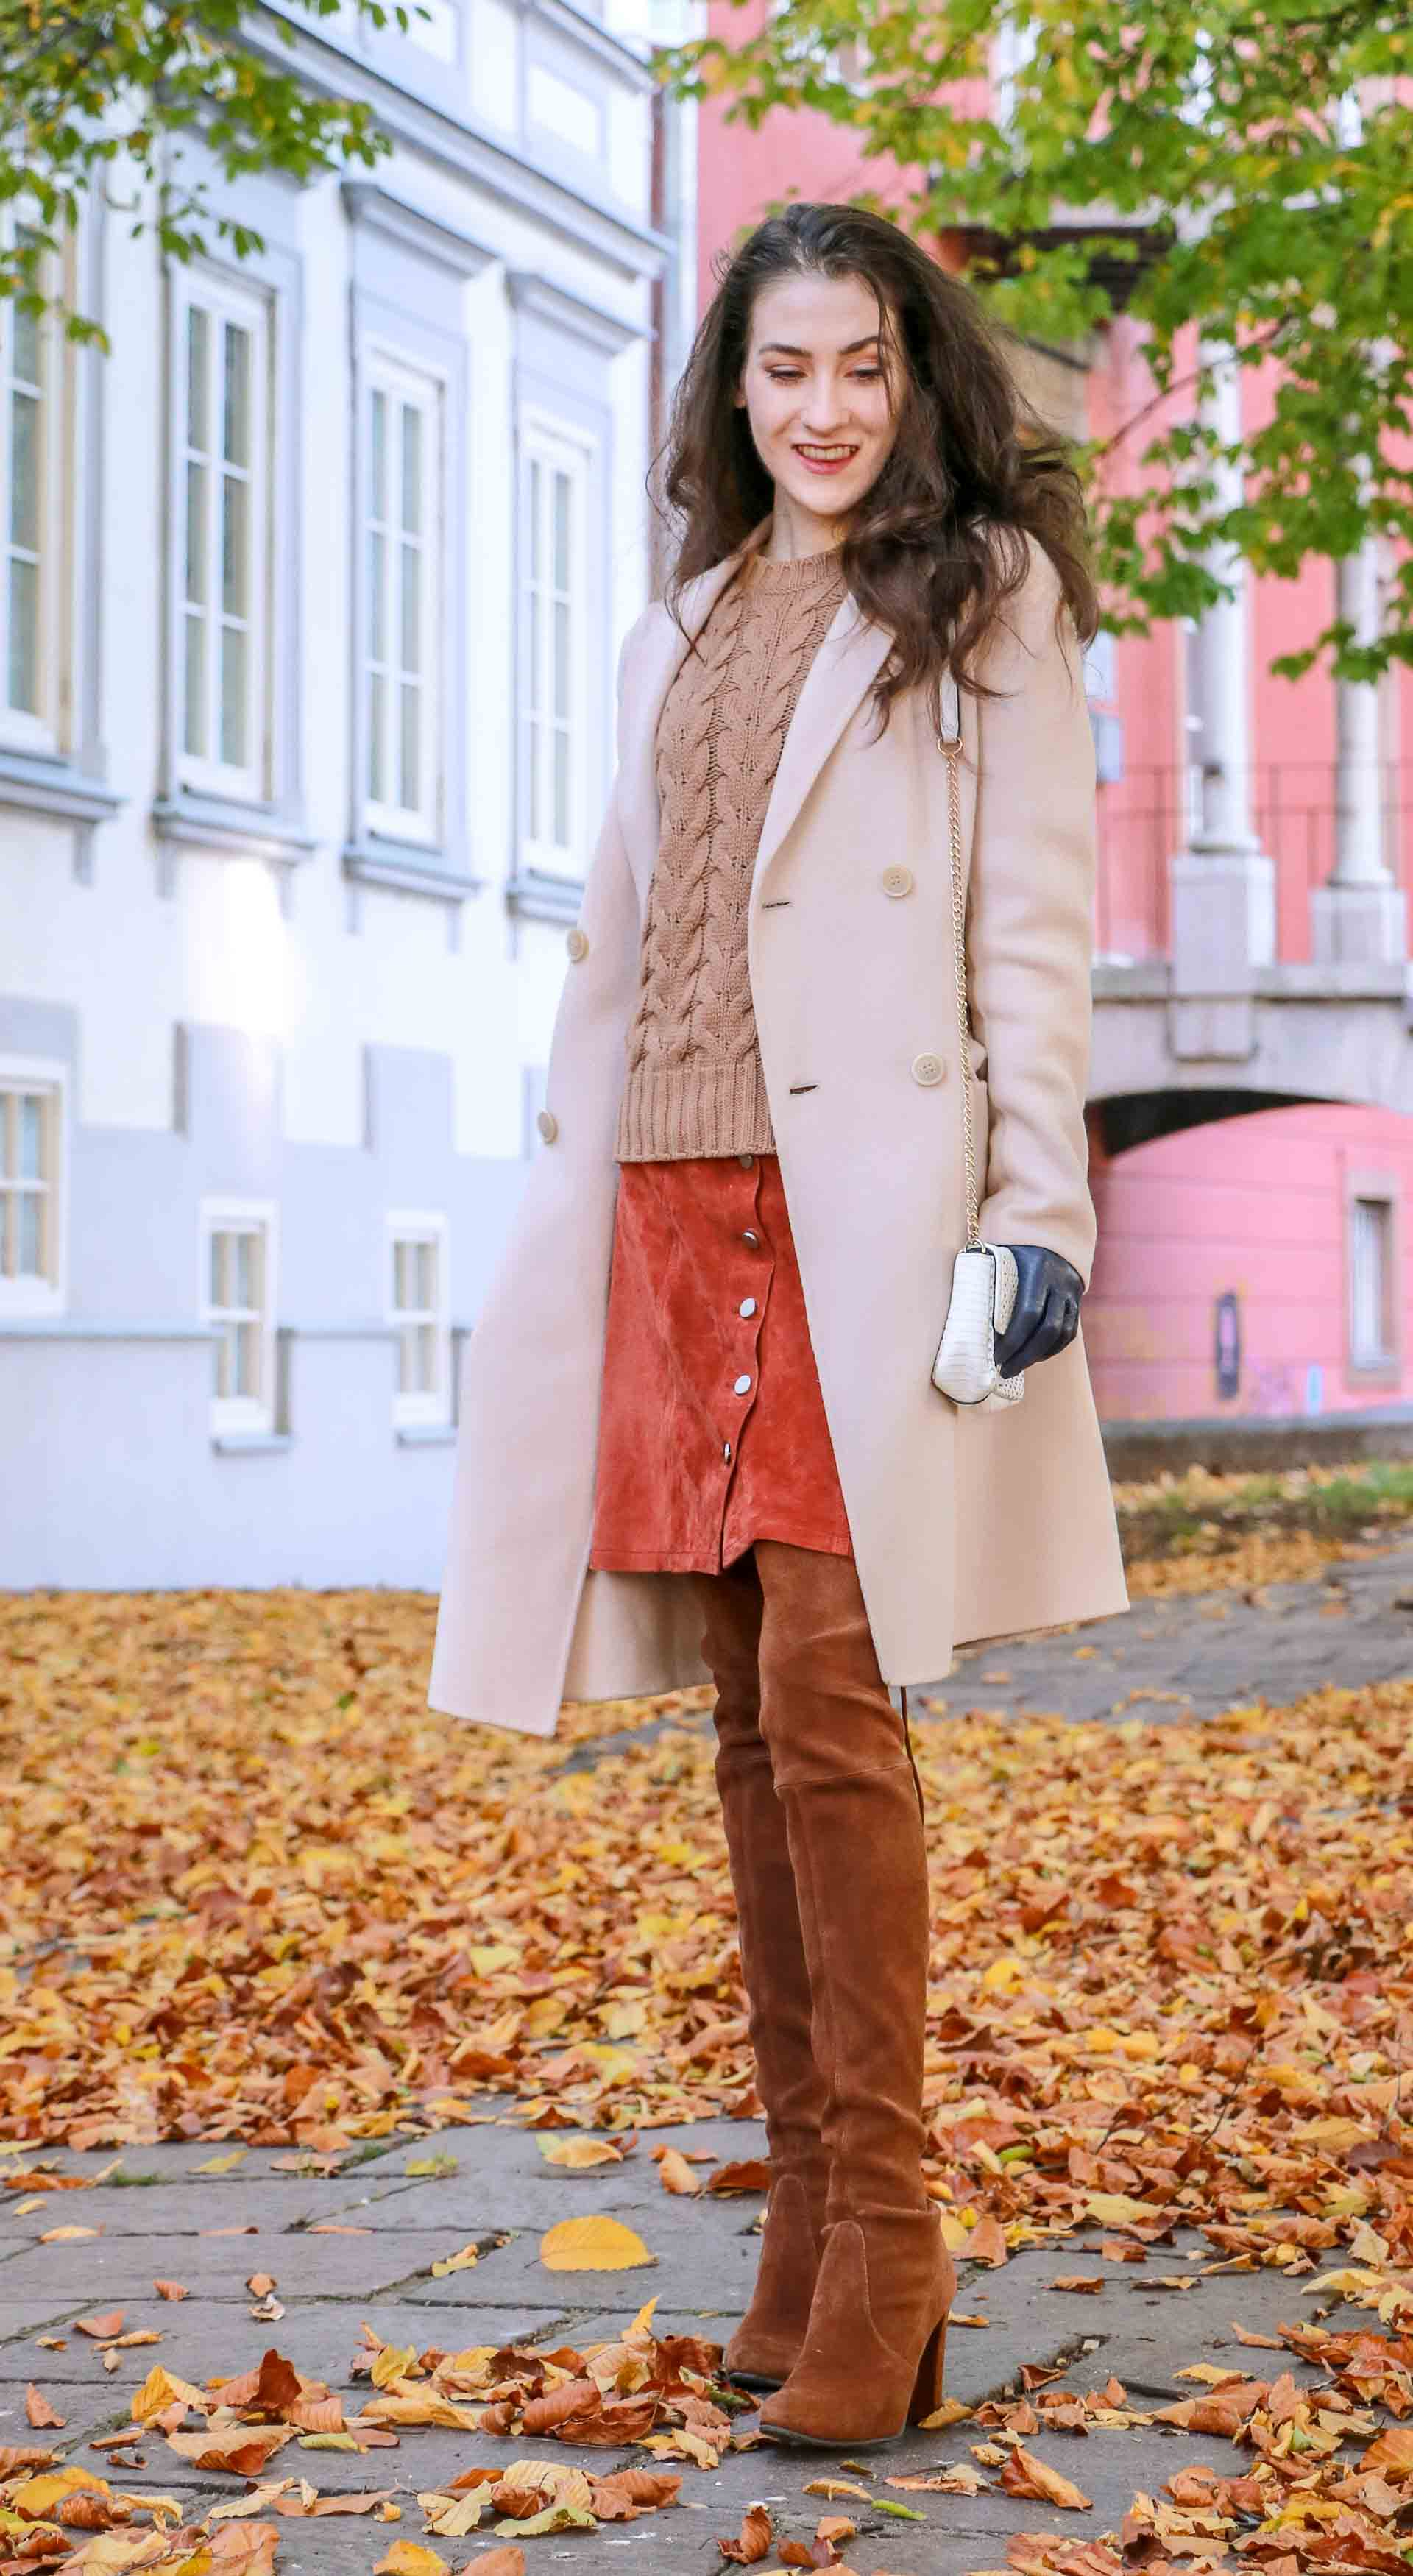 Beautiful Slovenian Fashion Blogger Veronika Lipar of Brunette from Wall wearing Max Mara camel cable knit sweater, front button brown suede skirt, Stuart Weitzman brown over the knee boots, Max Mara coat in autumn